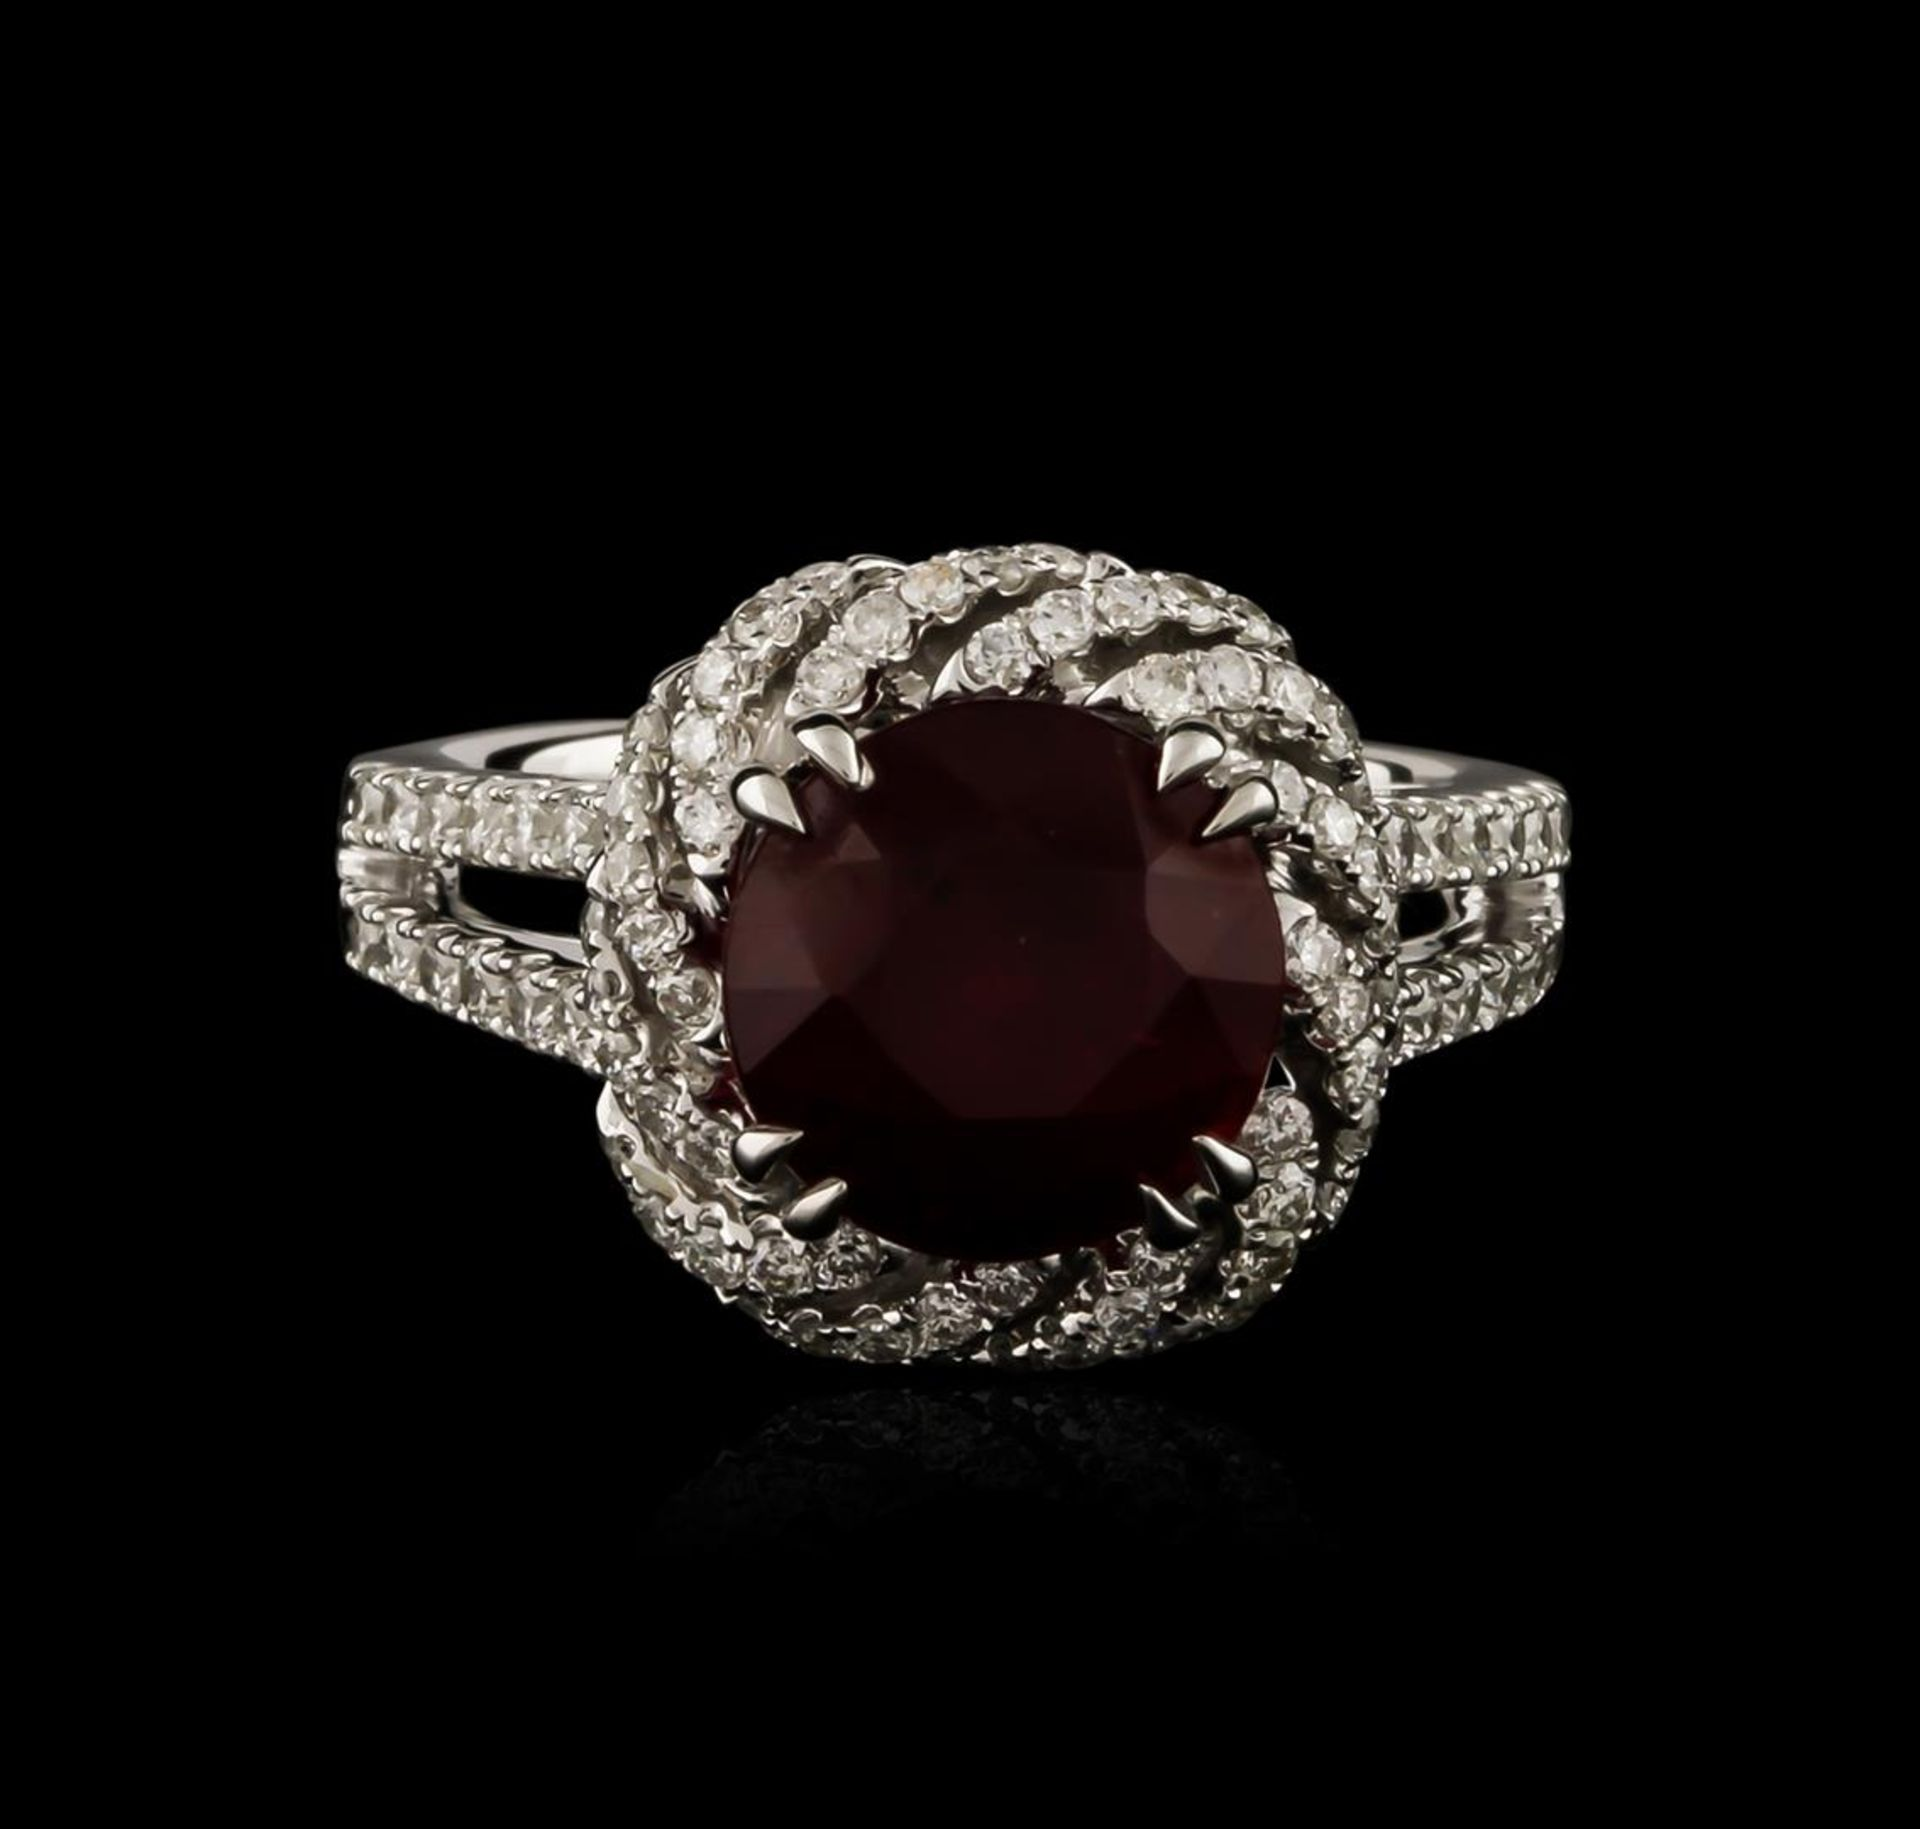 14KT White Gold 4.05 ctw Ruby and Diamond Ring - Image 2 of 3